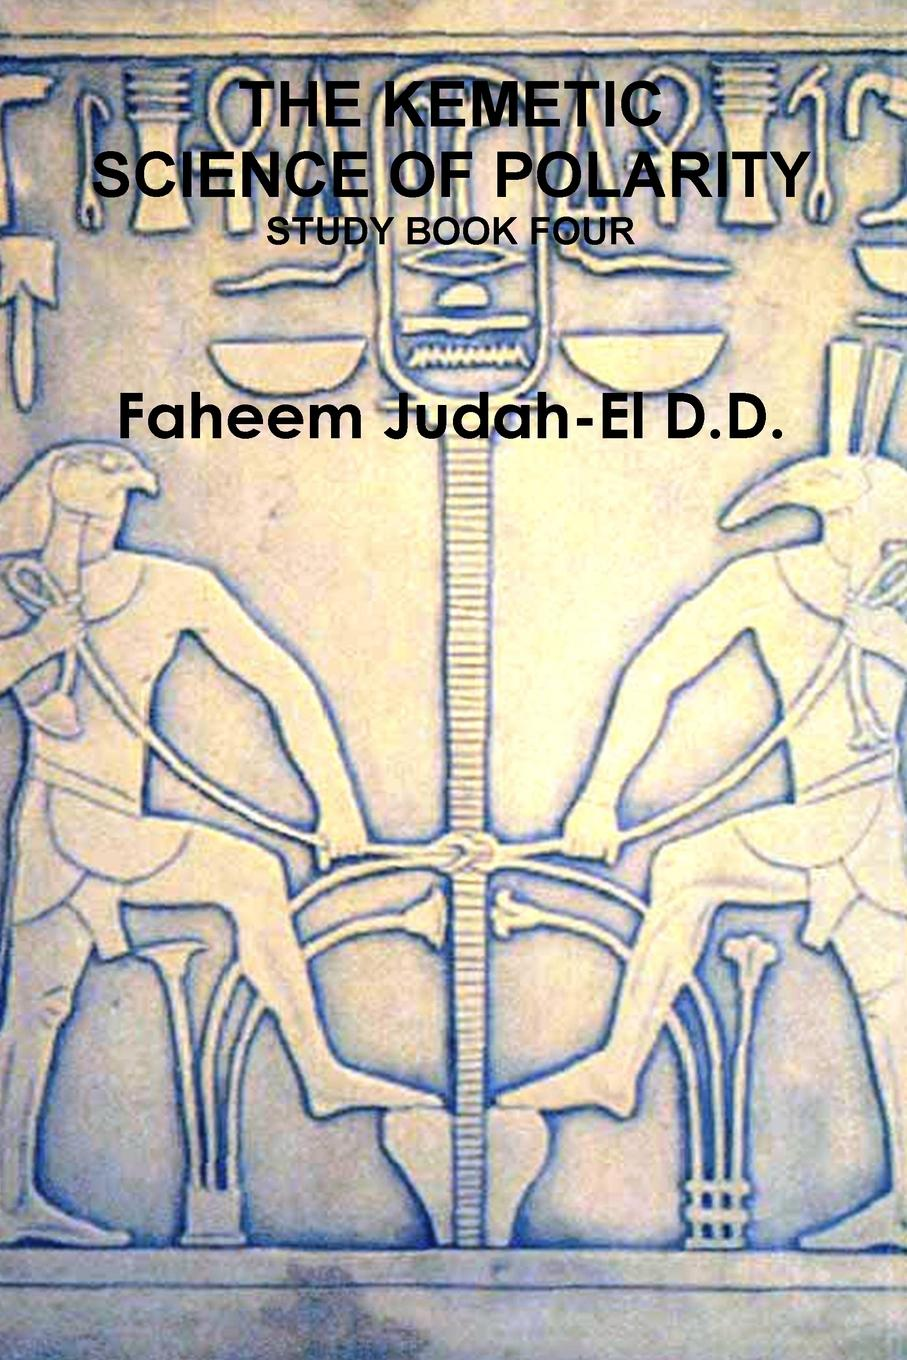 Faheem Judah-El D.D. THE KEMETIC SCIENCE OF POLARITY scott stratten unmarketing everything has changed and nothing is different